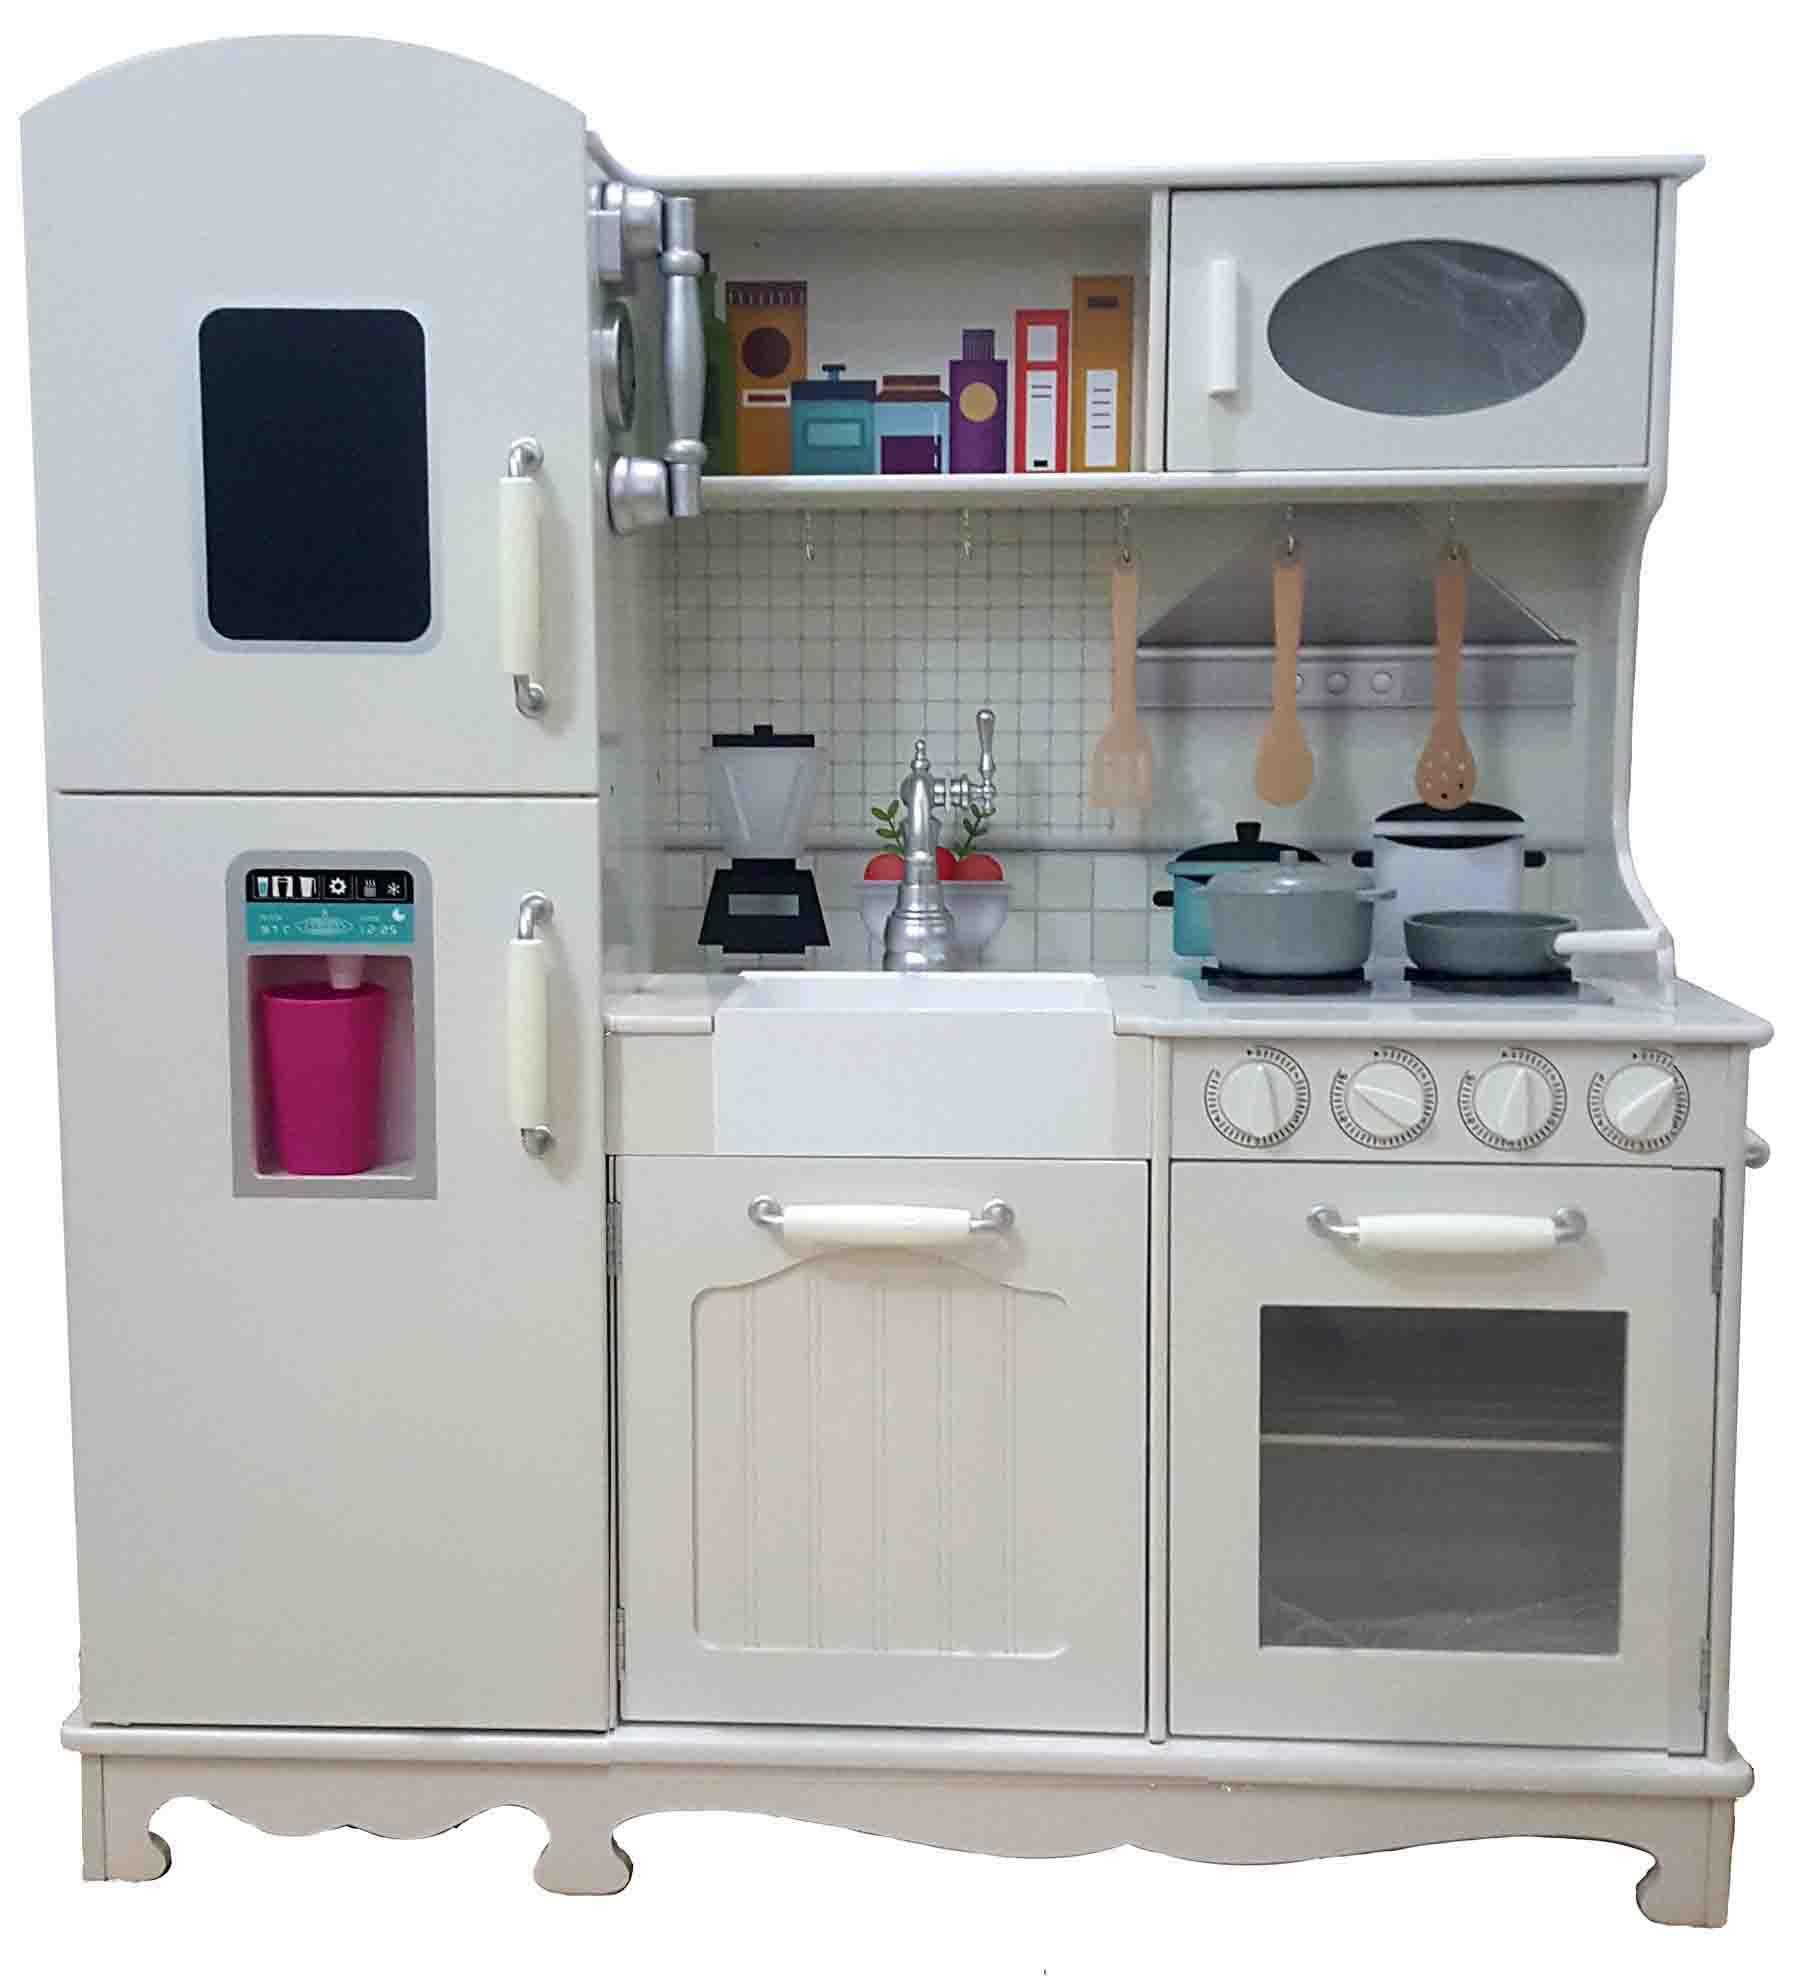 Toy Kitchen for sale - Play Kitchen online brands, prices & reviews ...